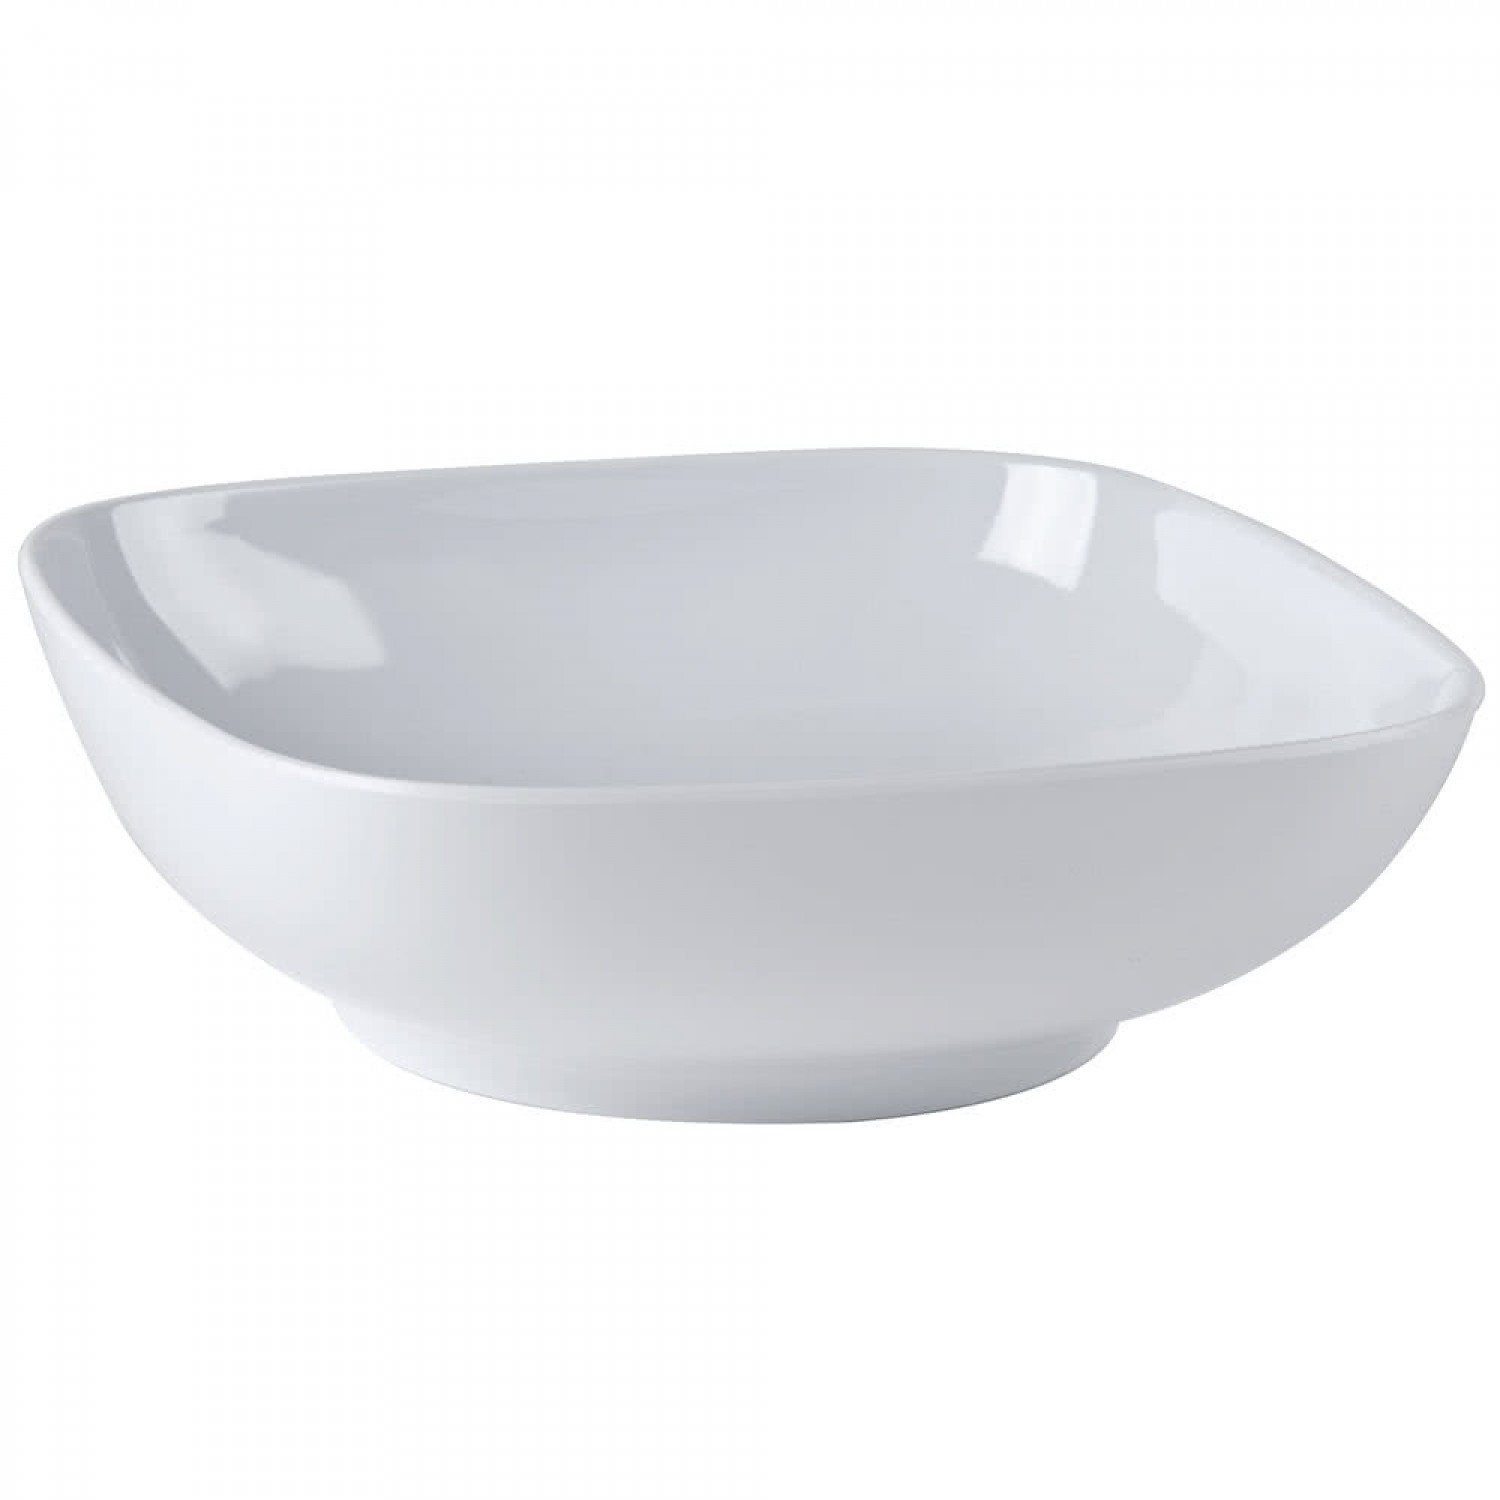 Thunder Group PS3111W Passion White Square Bowl with Round Edges 128 oz. - 1/2 doz